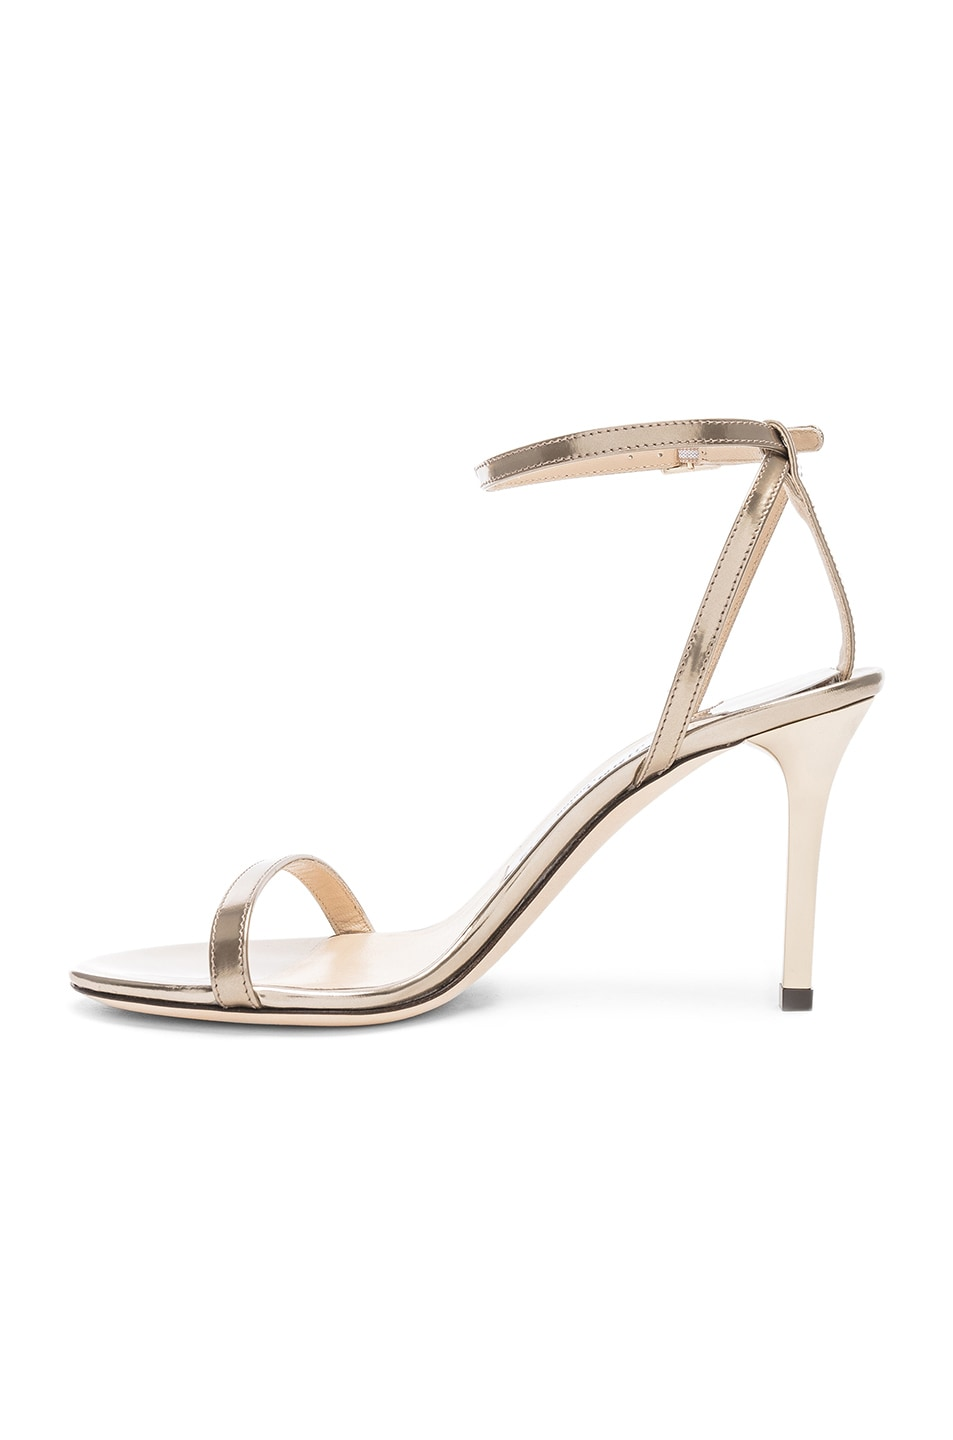 Image 5 of Jimmy Choo Minny 85 Mirror Leather Heel in Gold